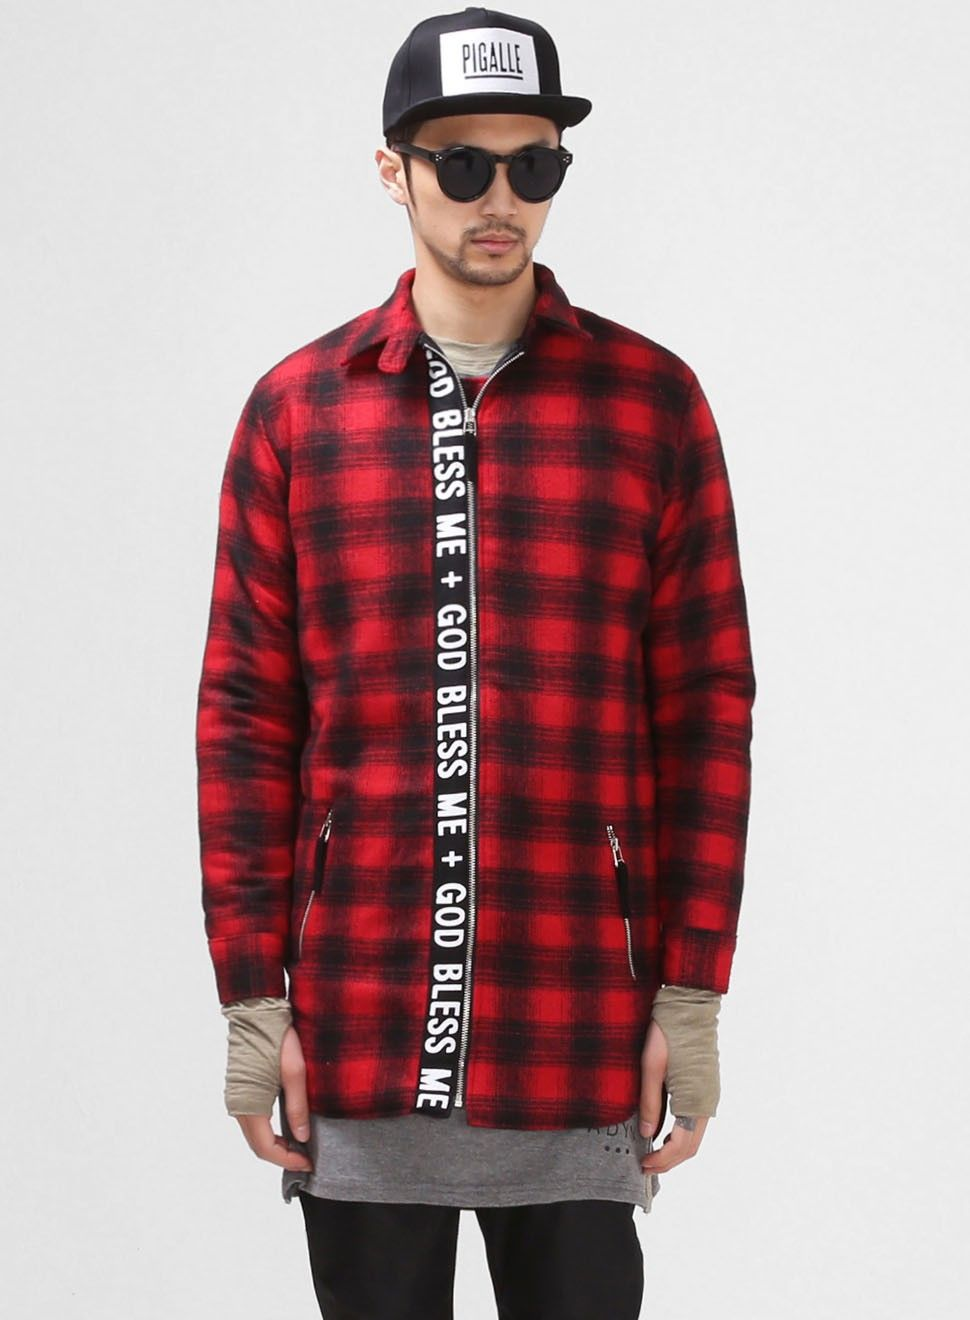 Woolblends Patchwork Plaid Zip-up Shirt Jacket $76.00 #Fashion #Street #Style #Plaid #Red #Blue